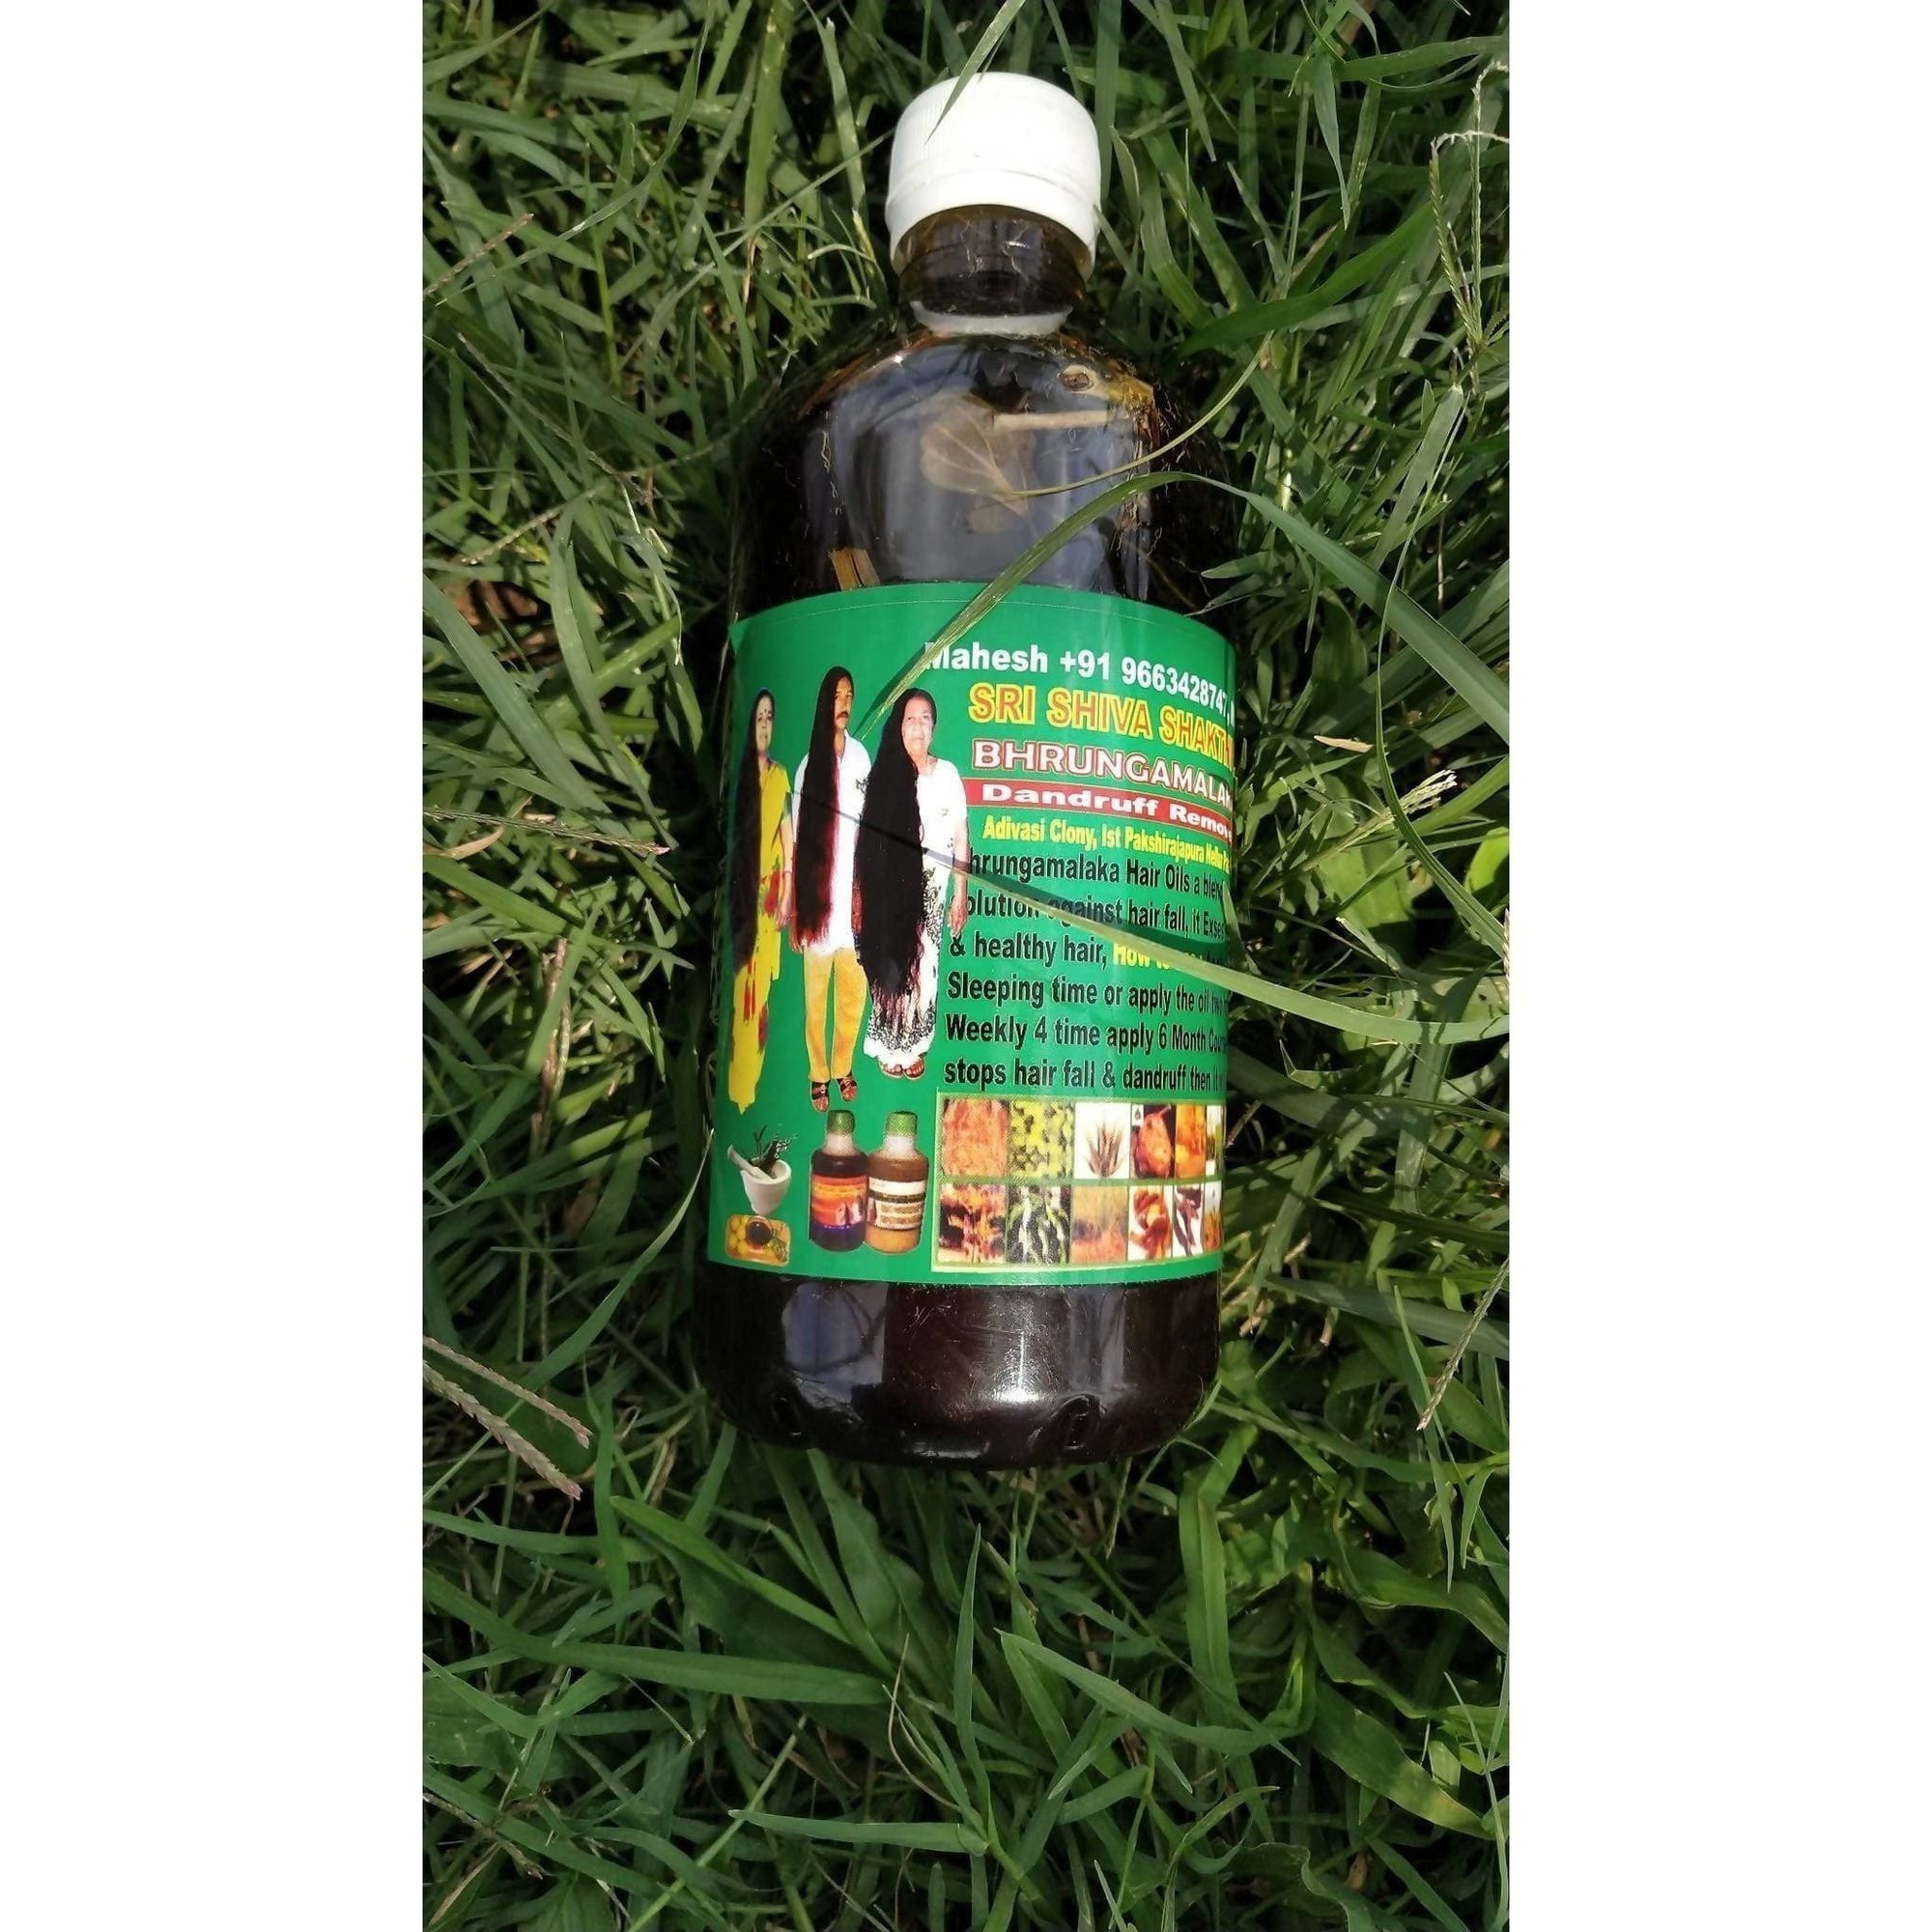 BRUNGAMALAKA HAIR GROWTH OIL 500 ml